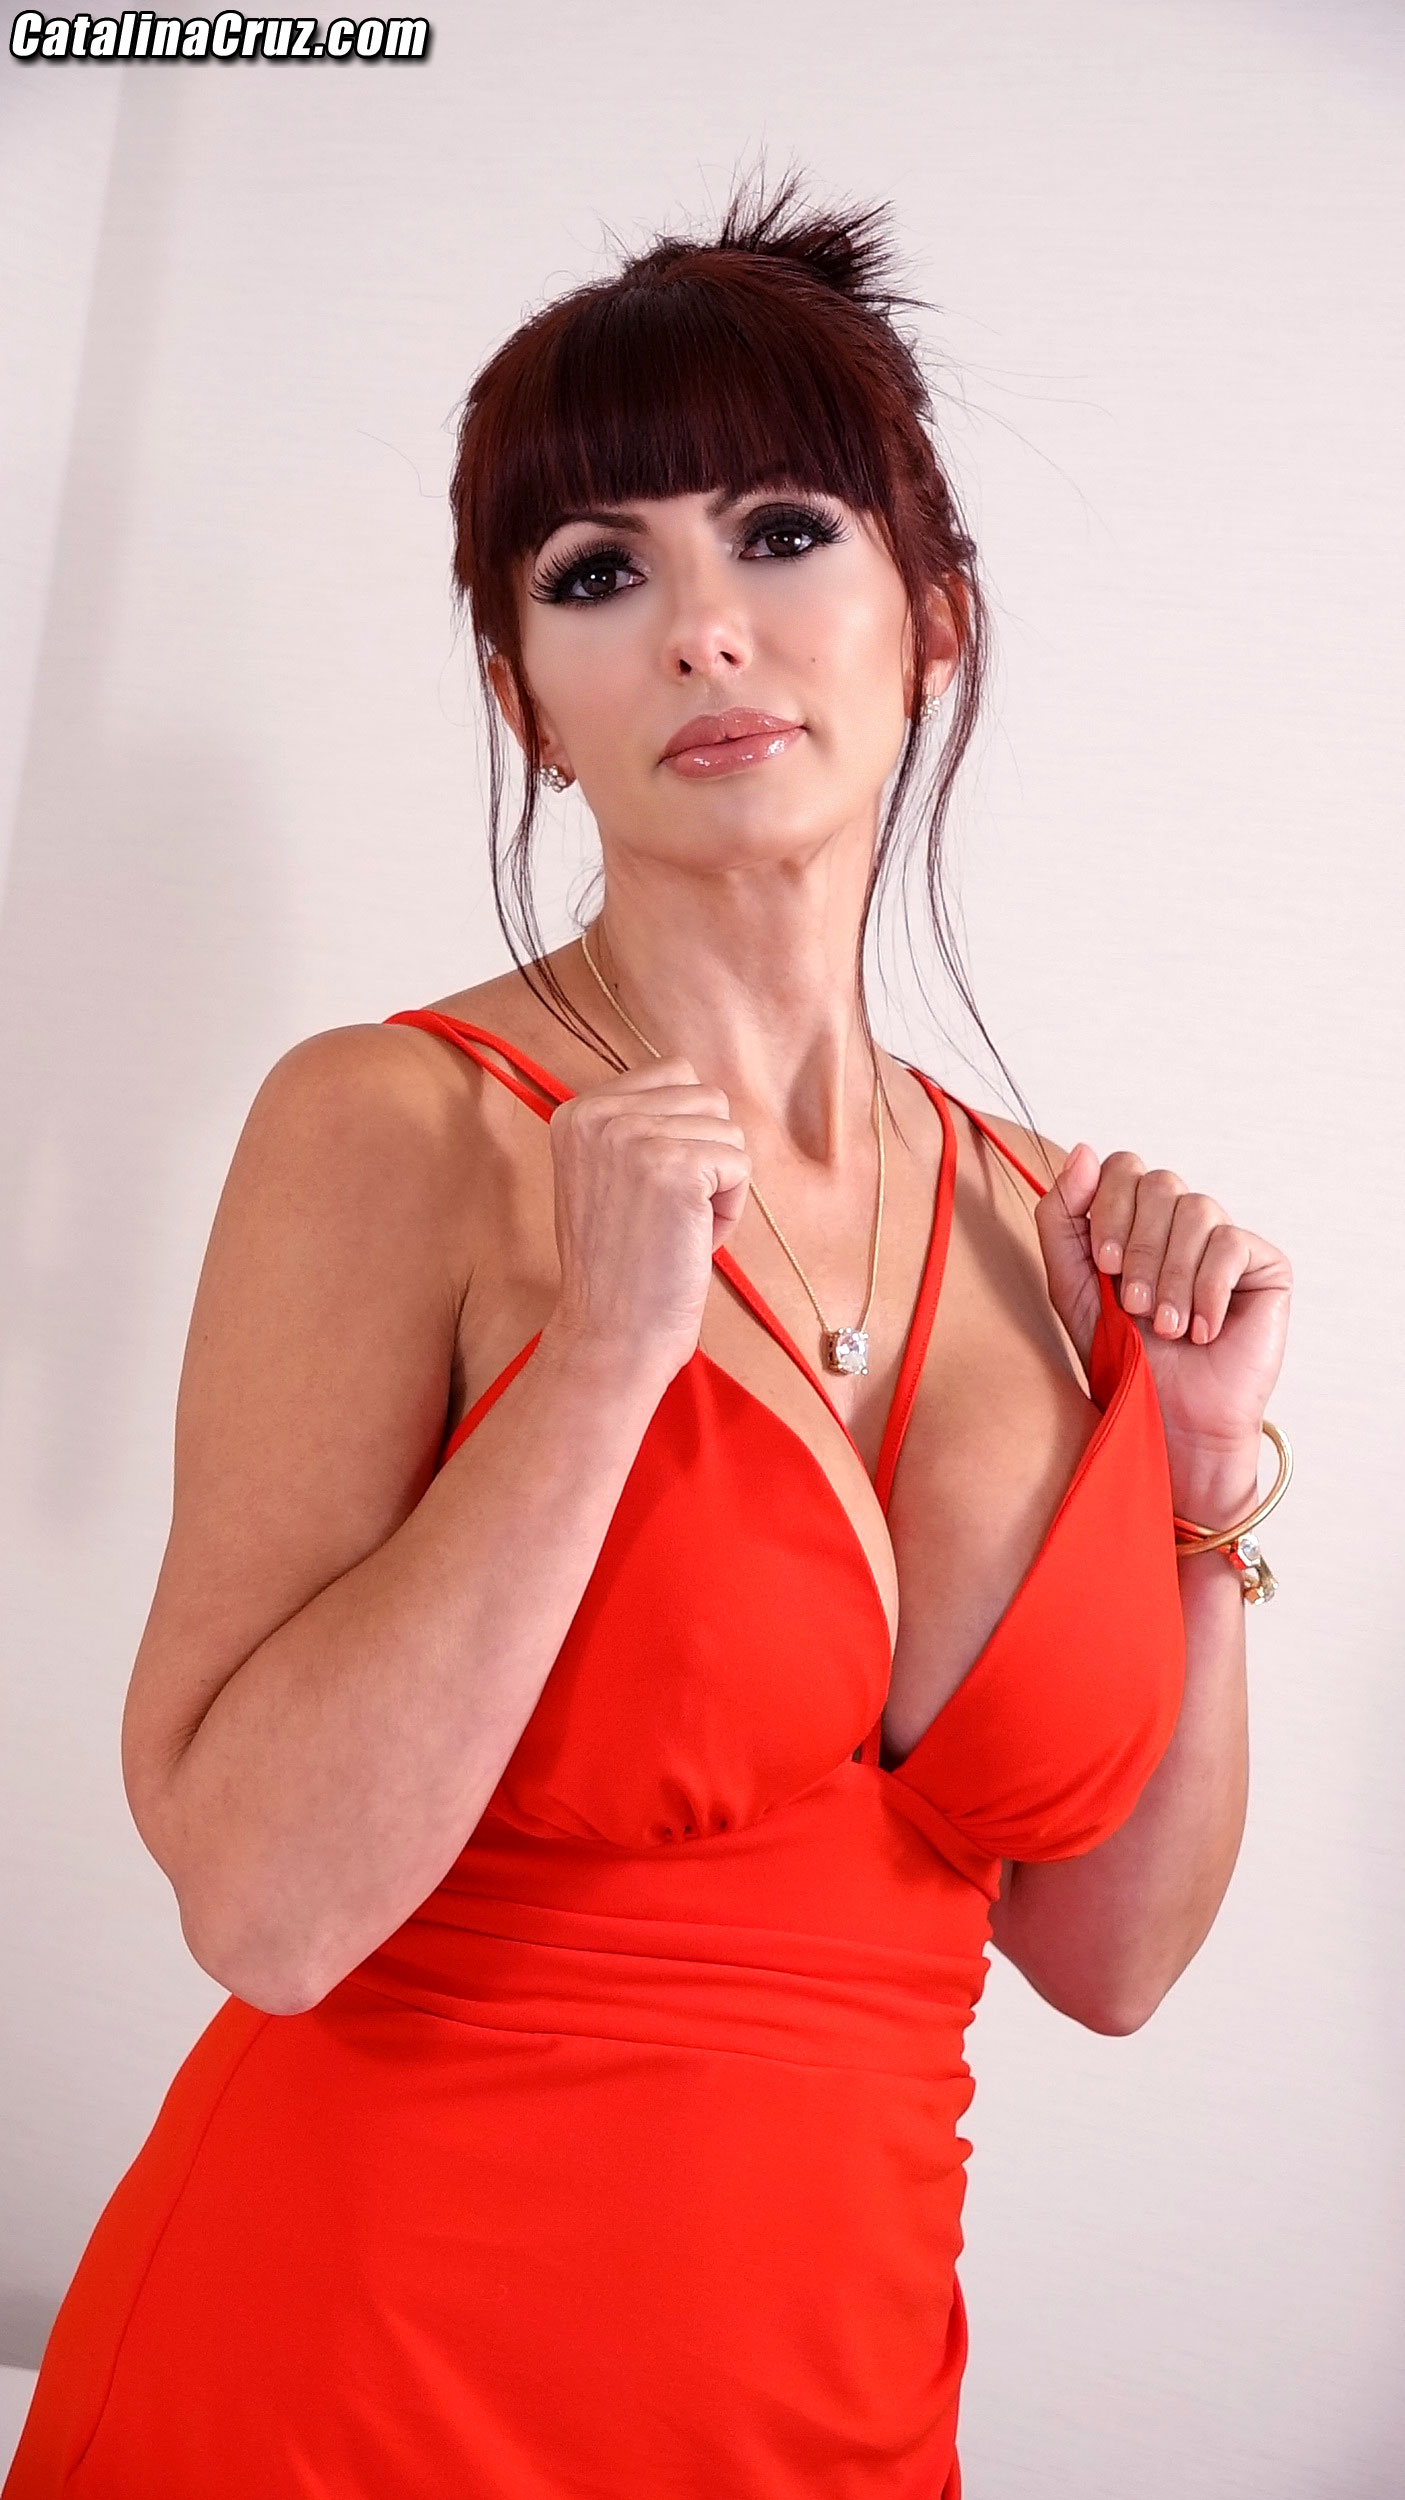 Catalina Cruz Huge Boobs in Sexy Red Dress